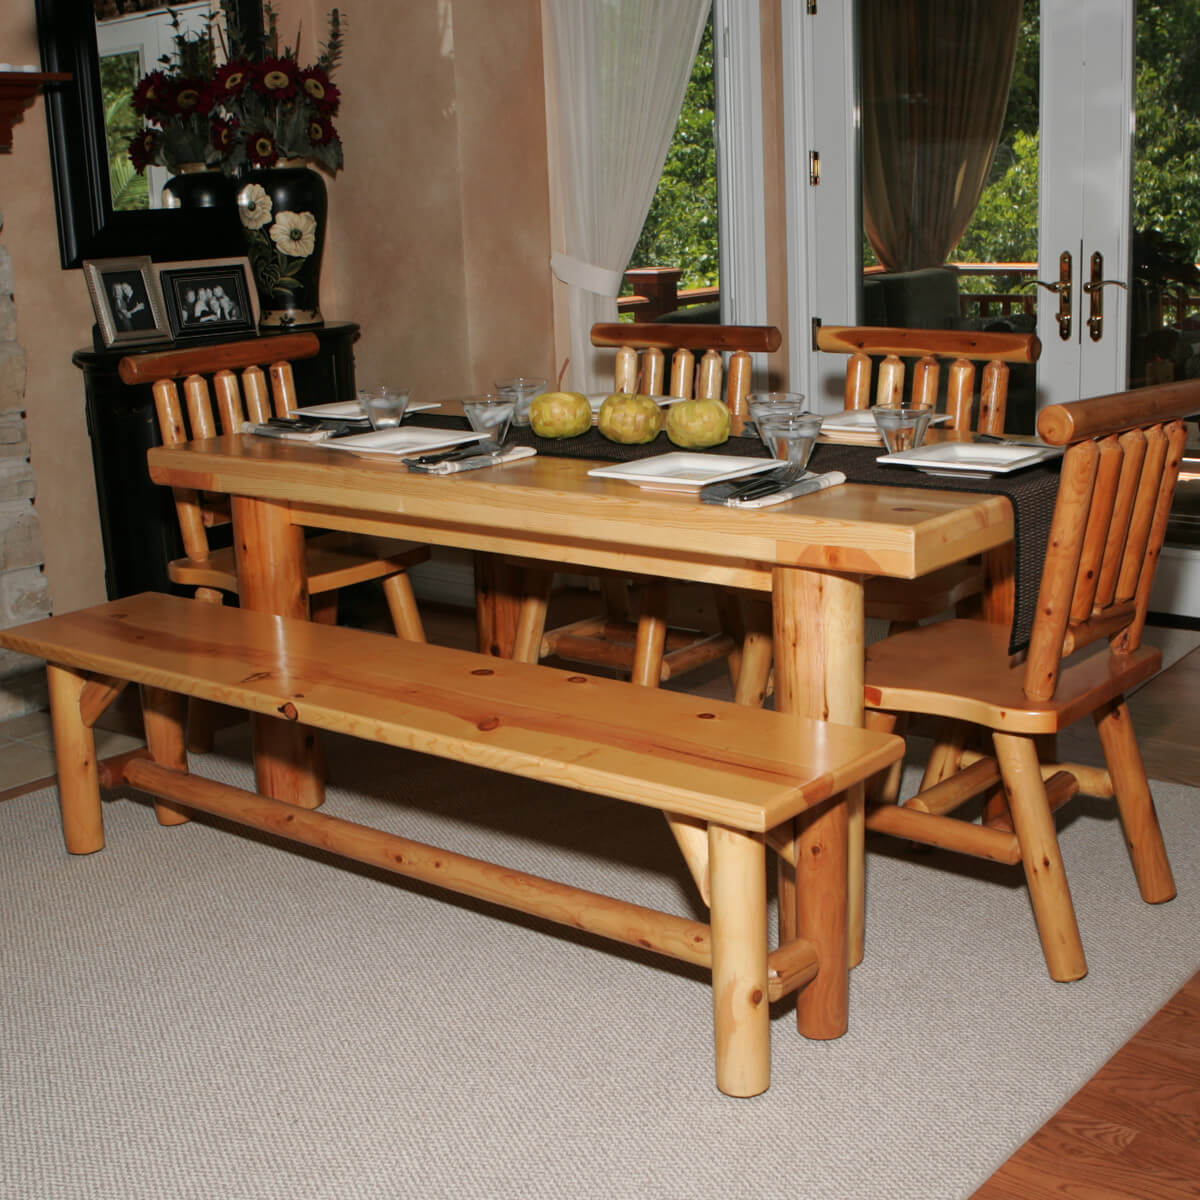 Hereu0027s A Dining Table Set With Bench Perfect For The Log Cabin Or Home.  Seating